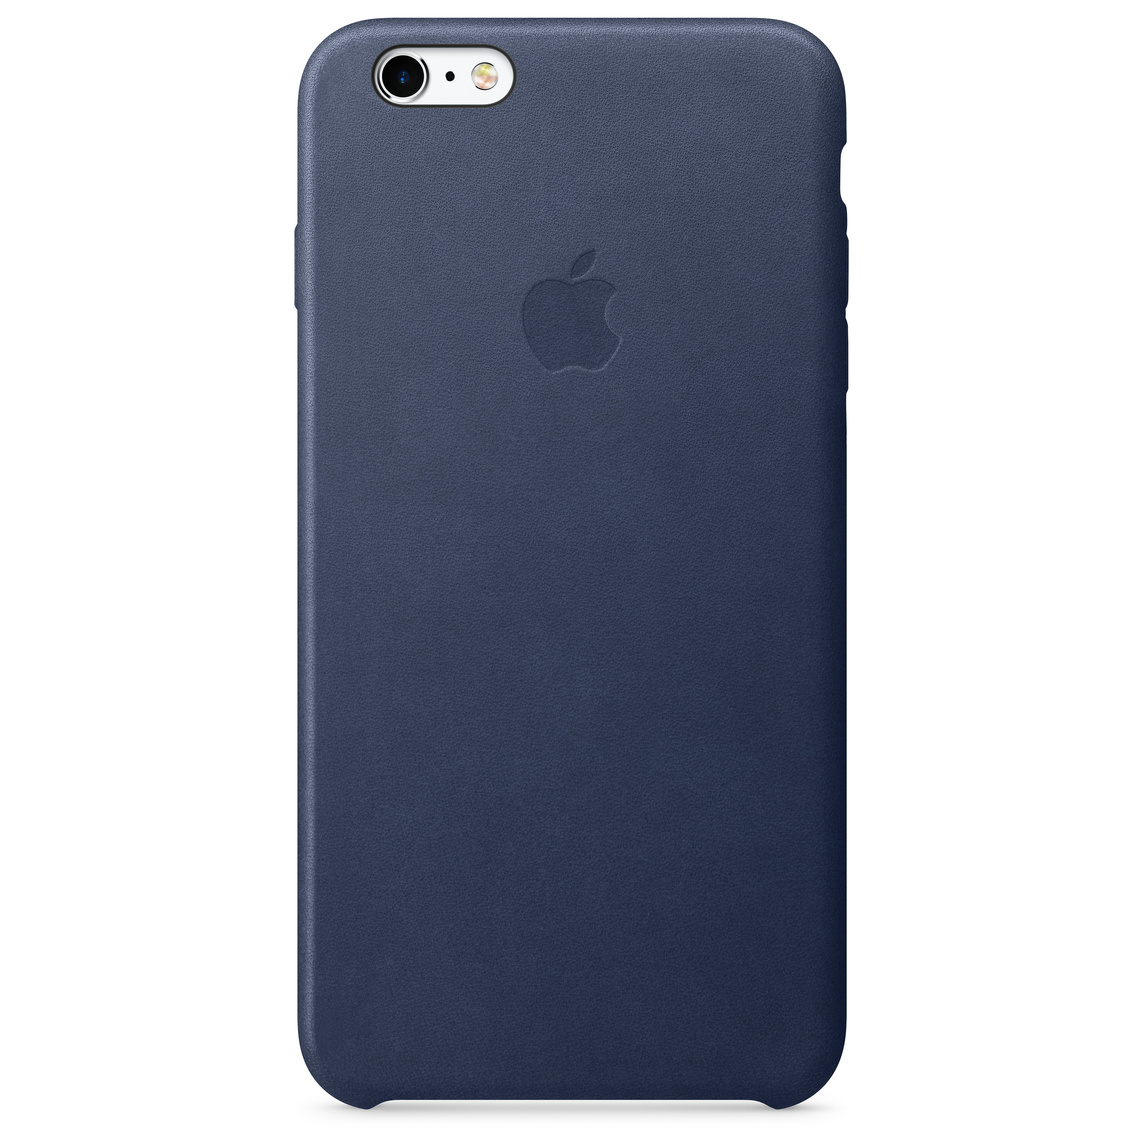 newest 3a25d 63043 iPhone 6 Plus / 6s Plus Leather Case - Midnight Blue